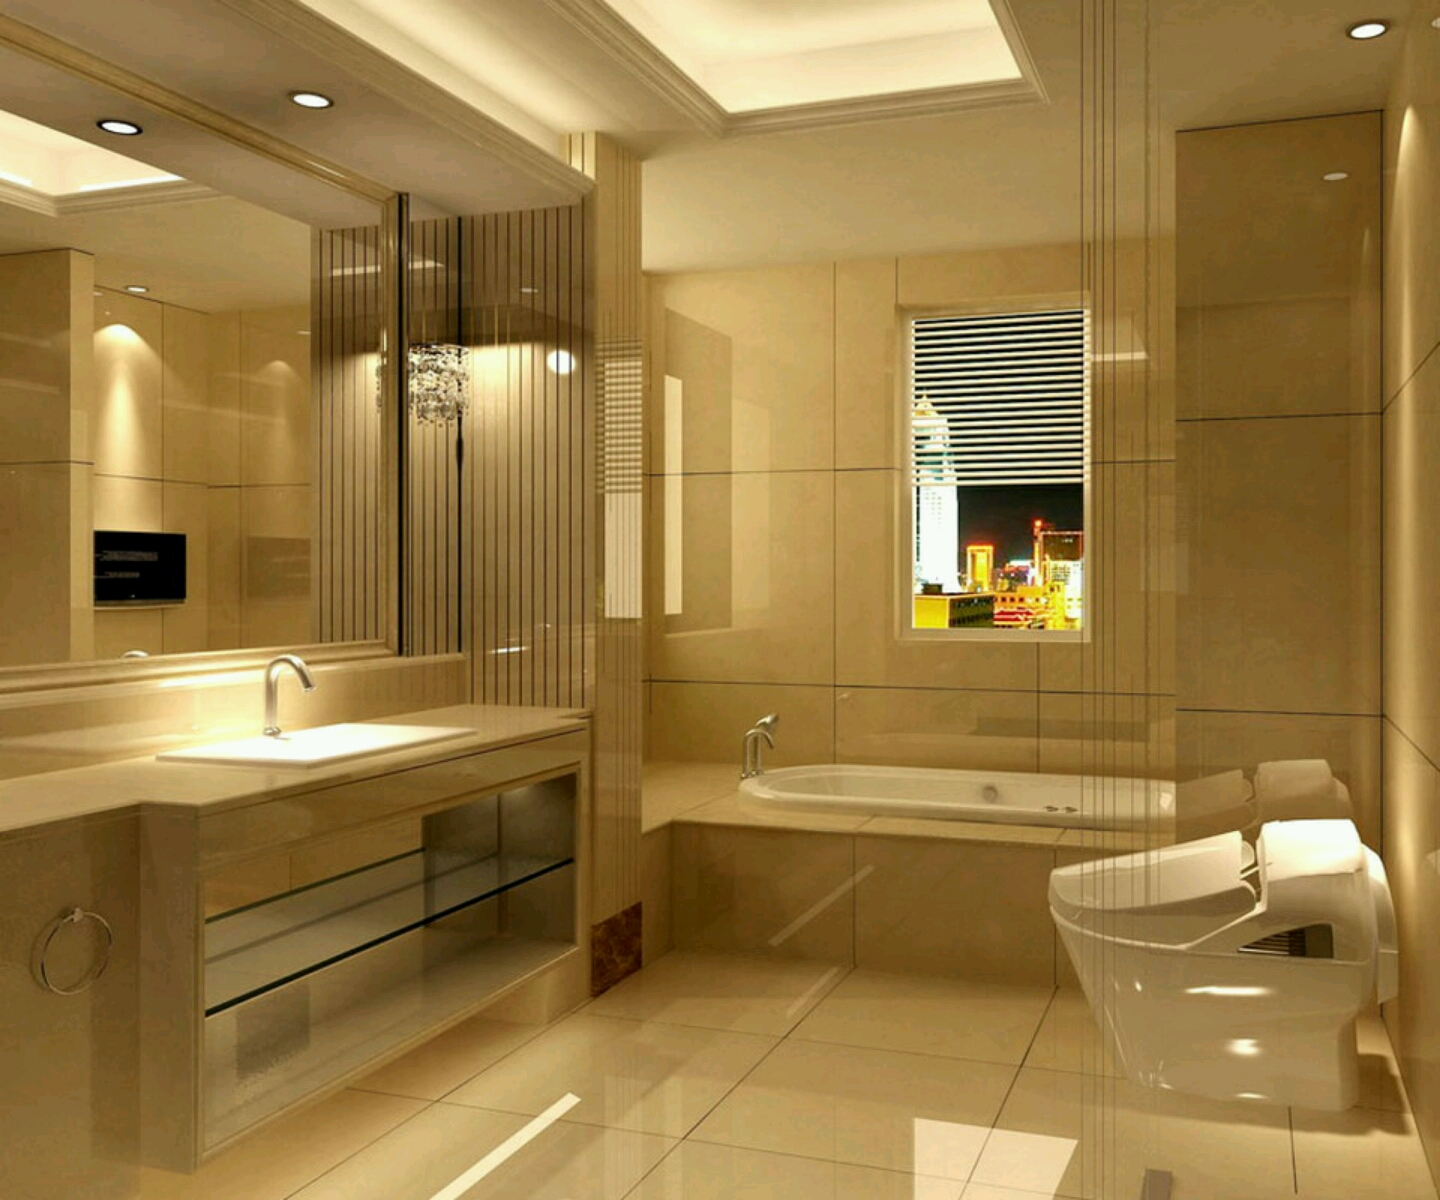 Modern bathrooms setting ideas furniture gallery - Bathroom design ...